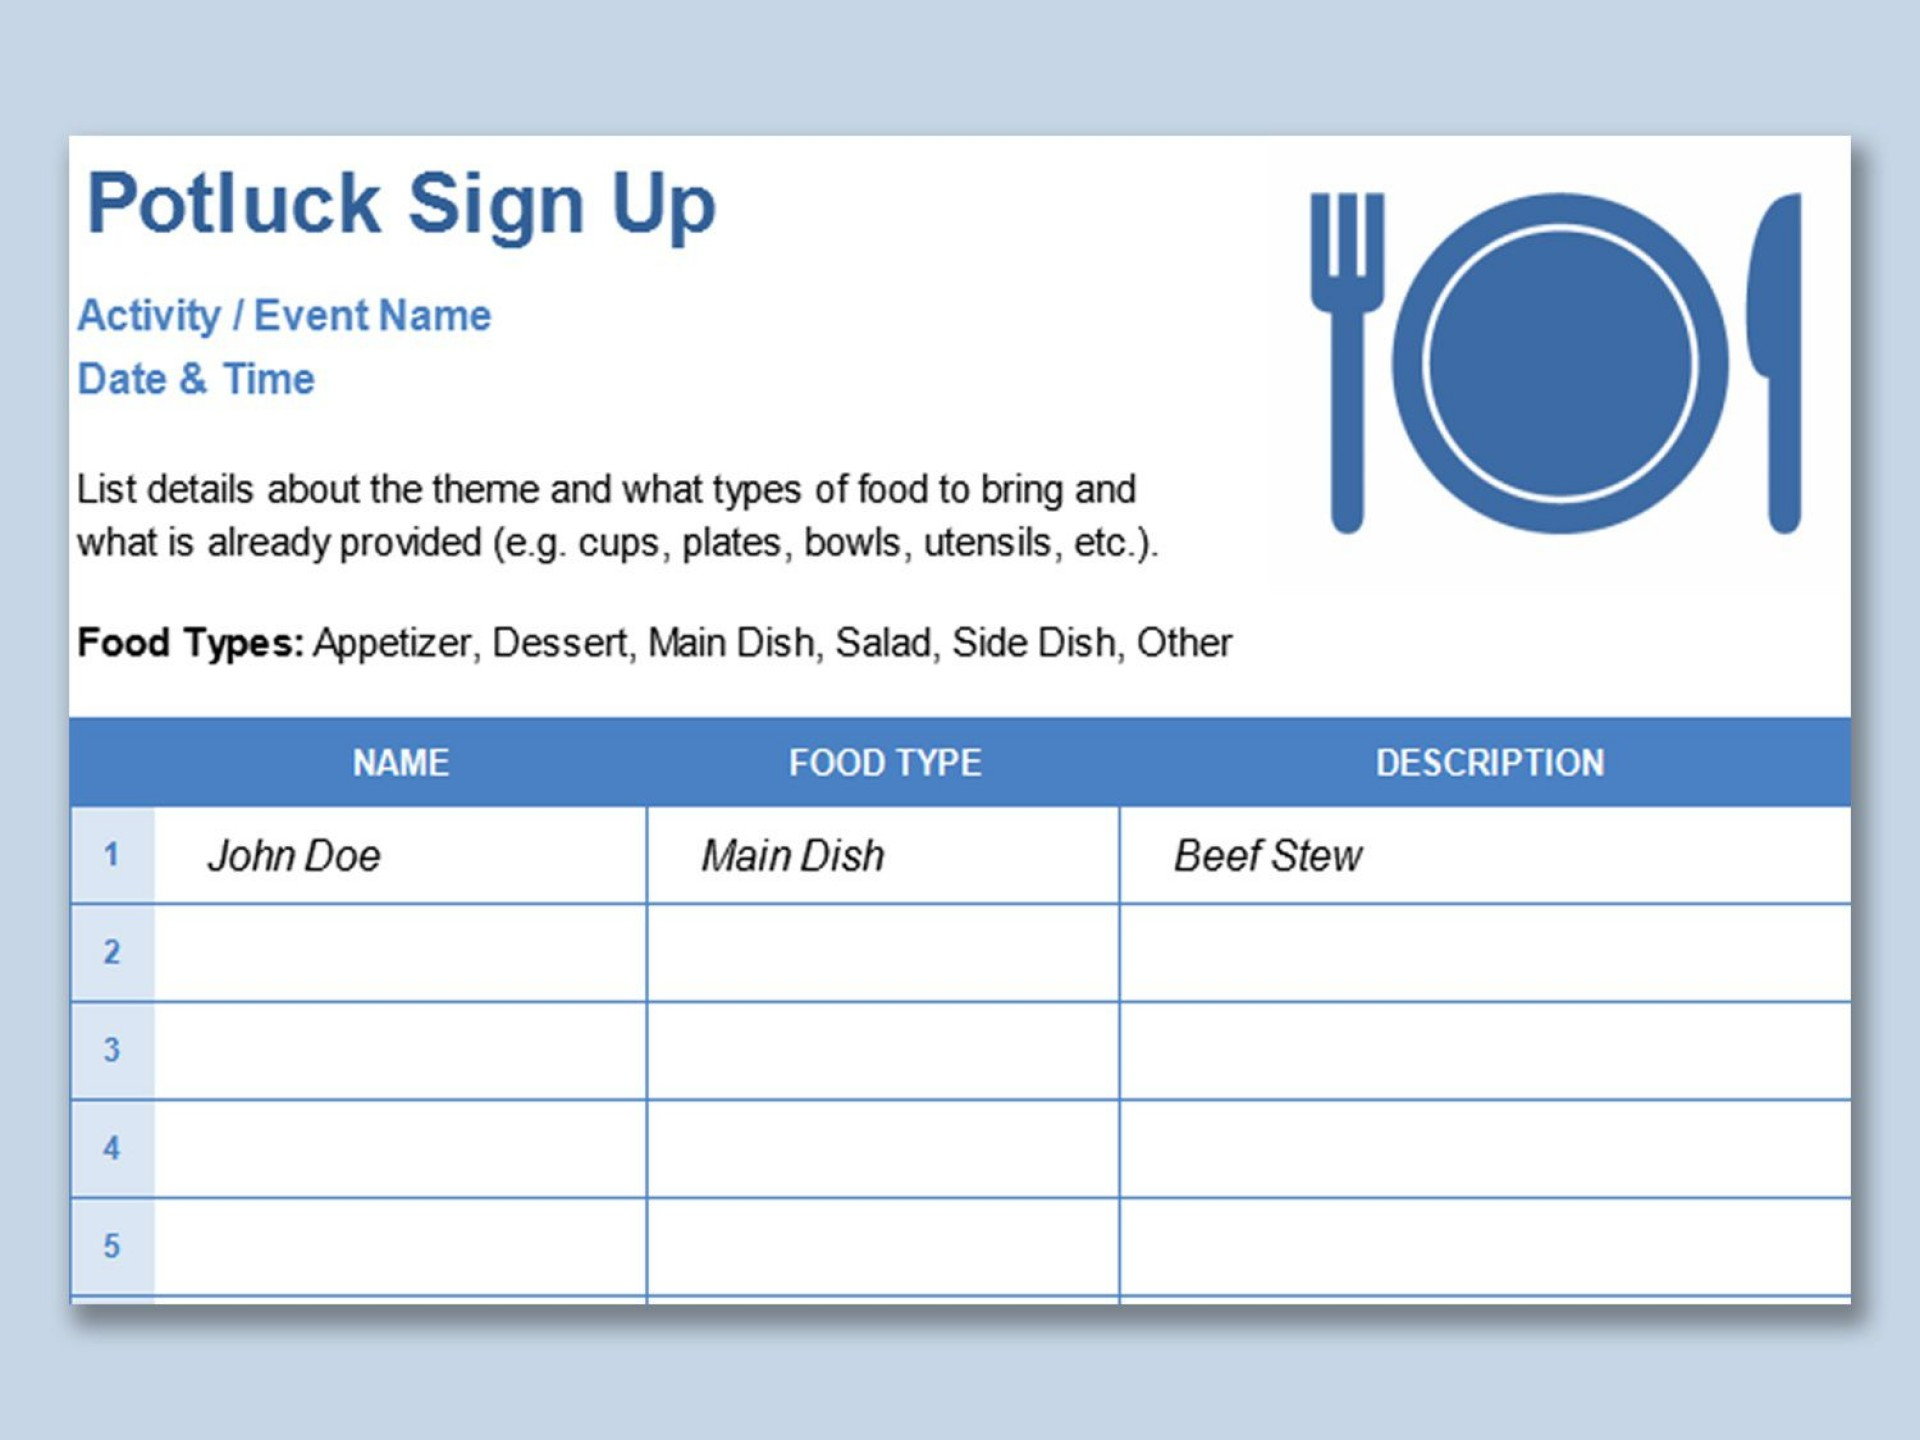 001 Simple Potluck Signup Sheet Template Word Image  Microsoft Free Printable Sign Up1920